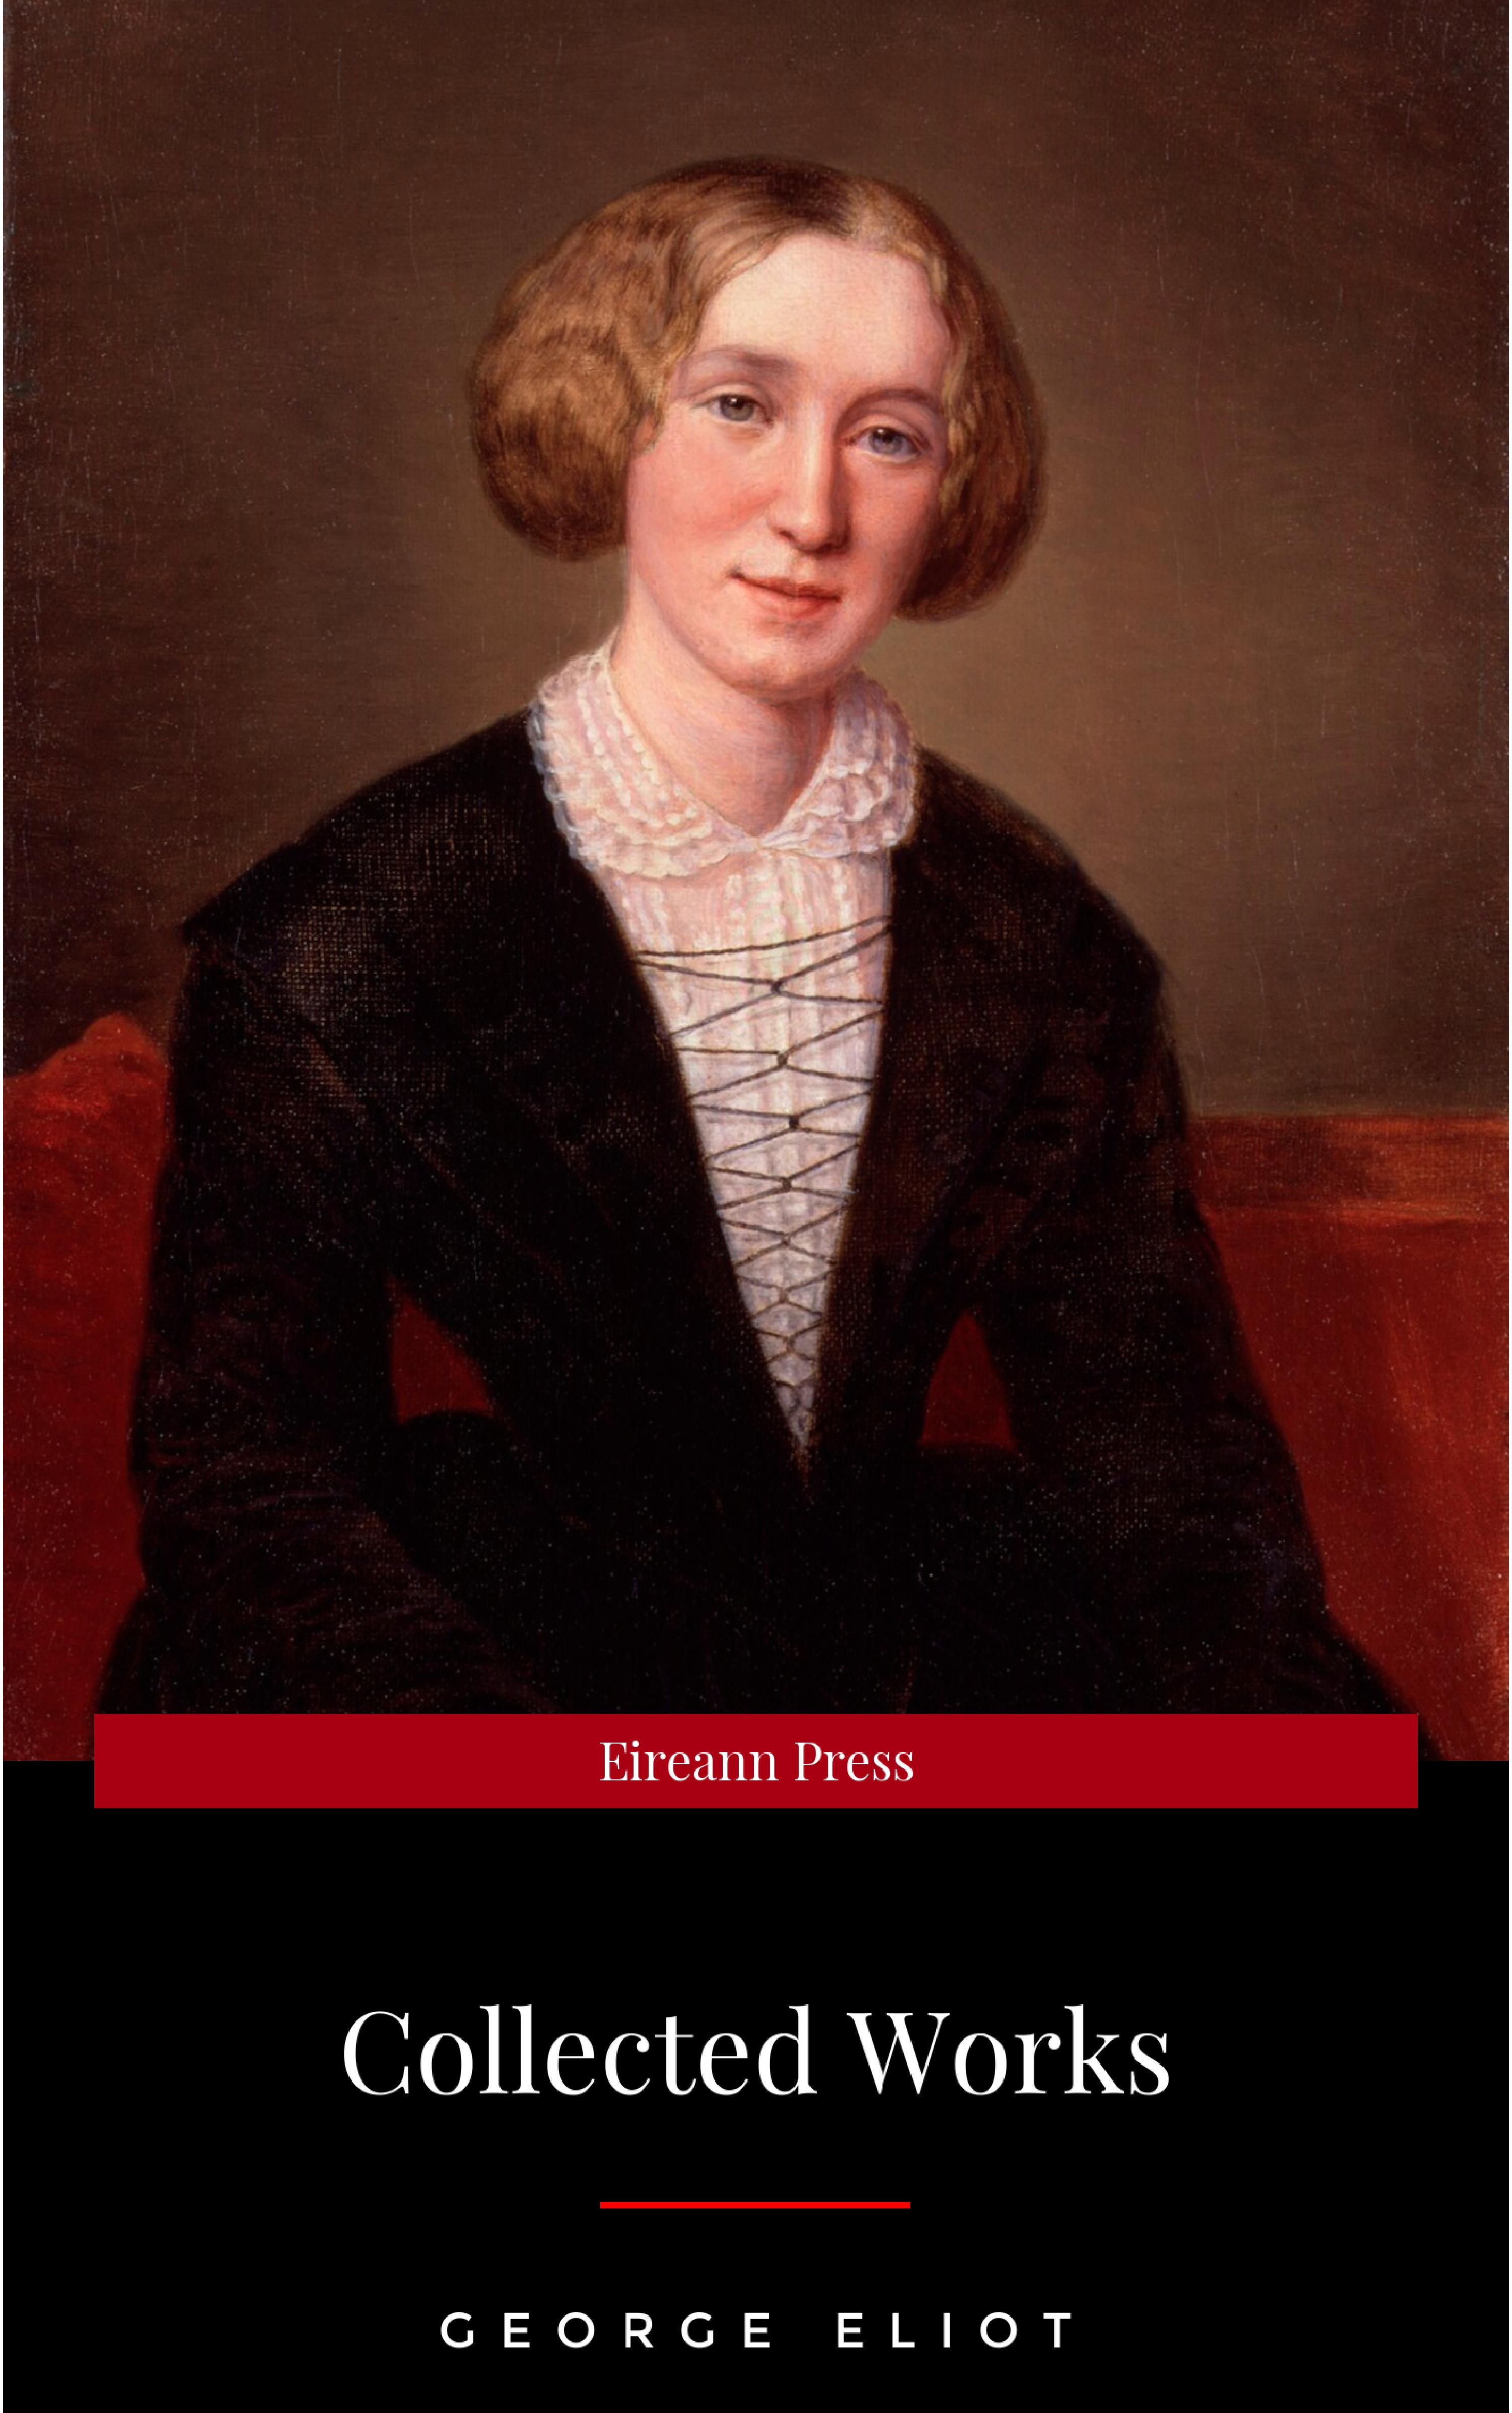 George Eliot The Collected Complete Works of George Eliot (Huge Collection Including The Mill on the Floss, Middlemarch, Romola, Silas Marner, Daniel Deronda, Felix Holt, Adam Bede, Brother Jacob, & More)